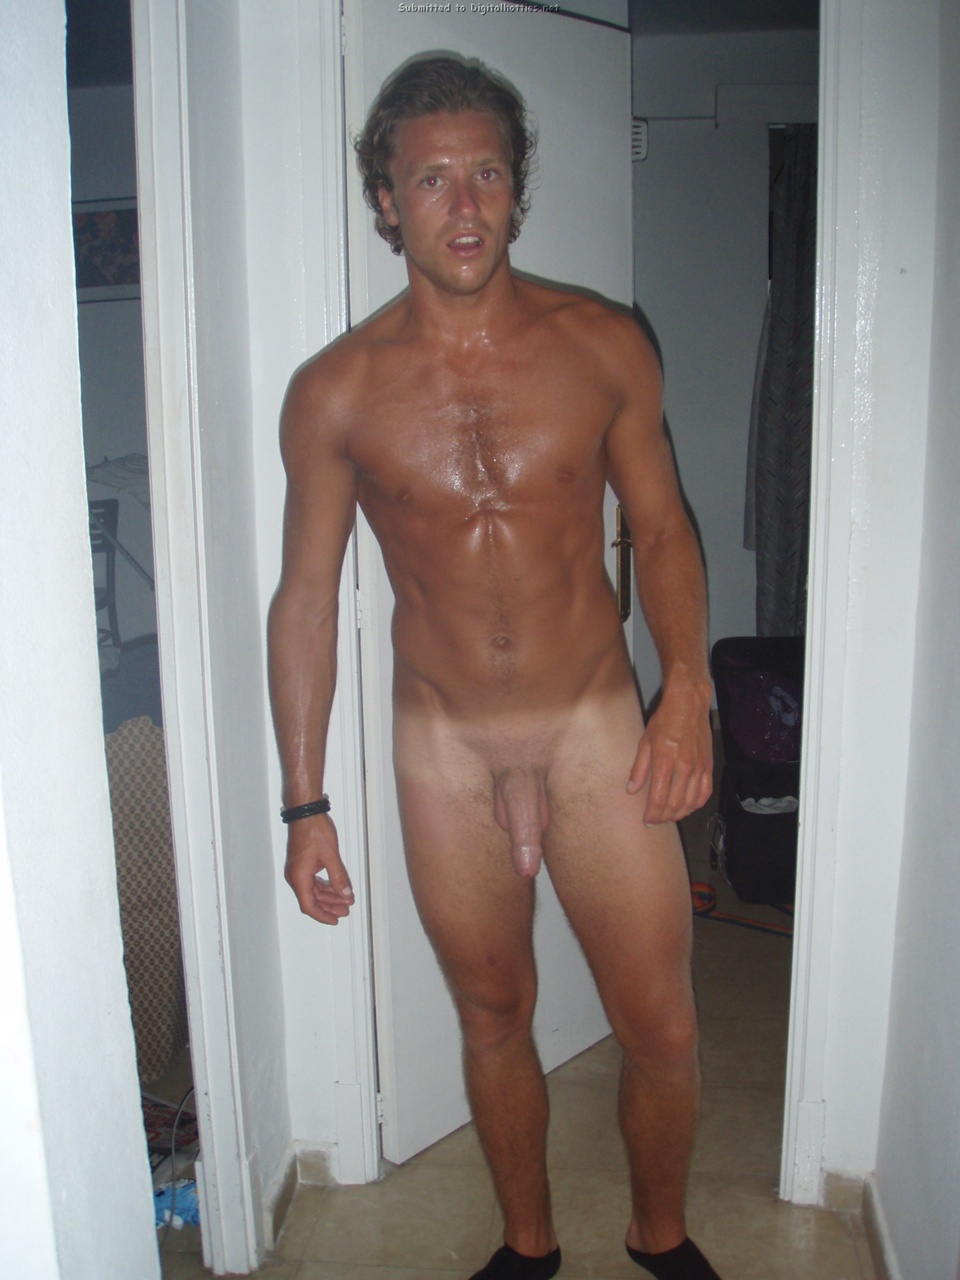 Have Free pics amateur naked males joke? think